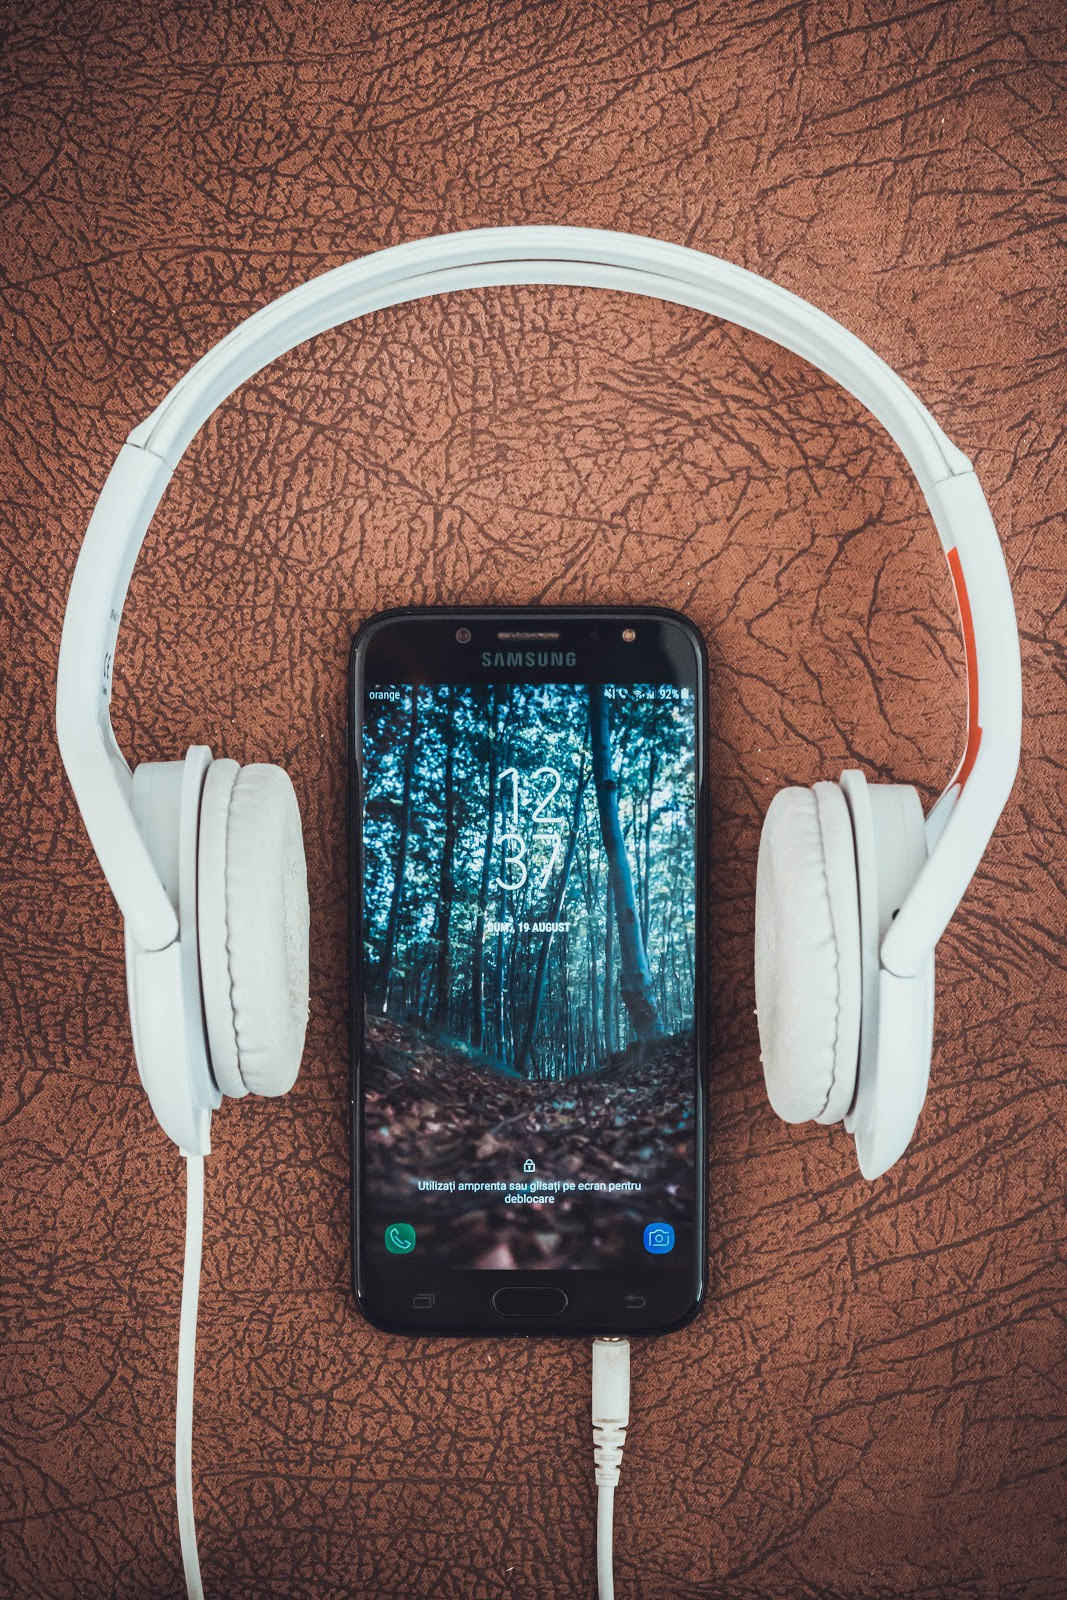 Smart phone on a table between over-ear headphones. The screensaver image is of a forest.